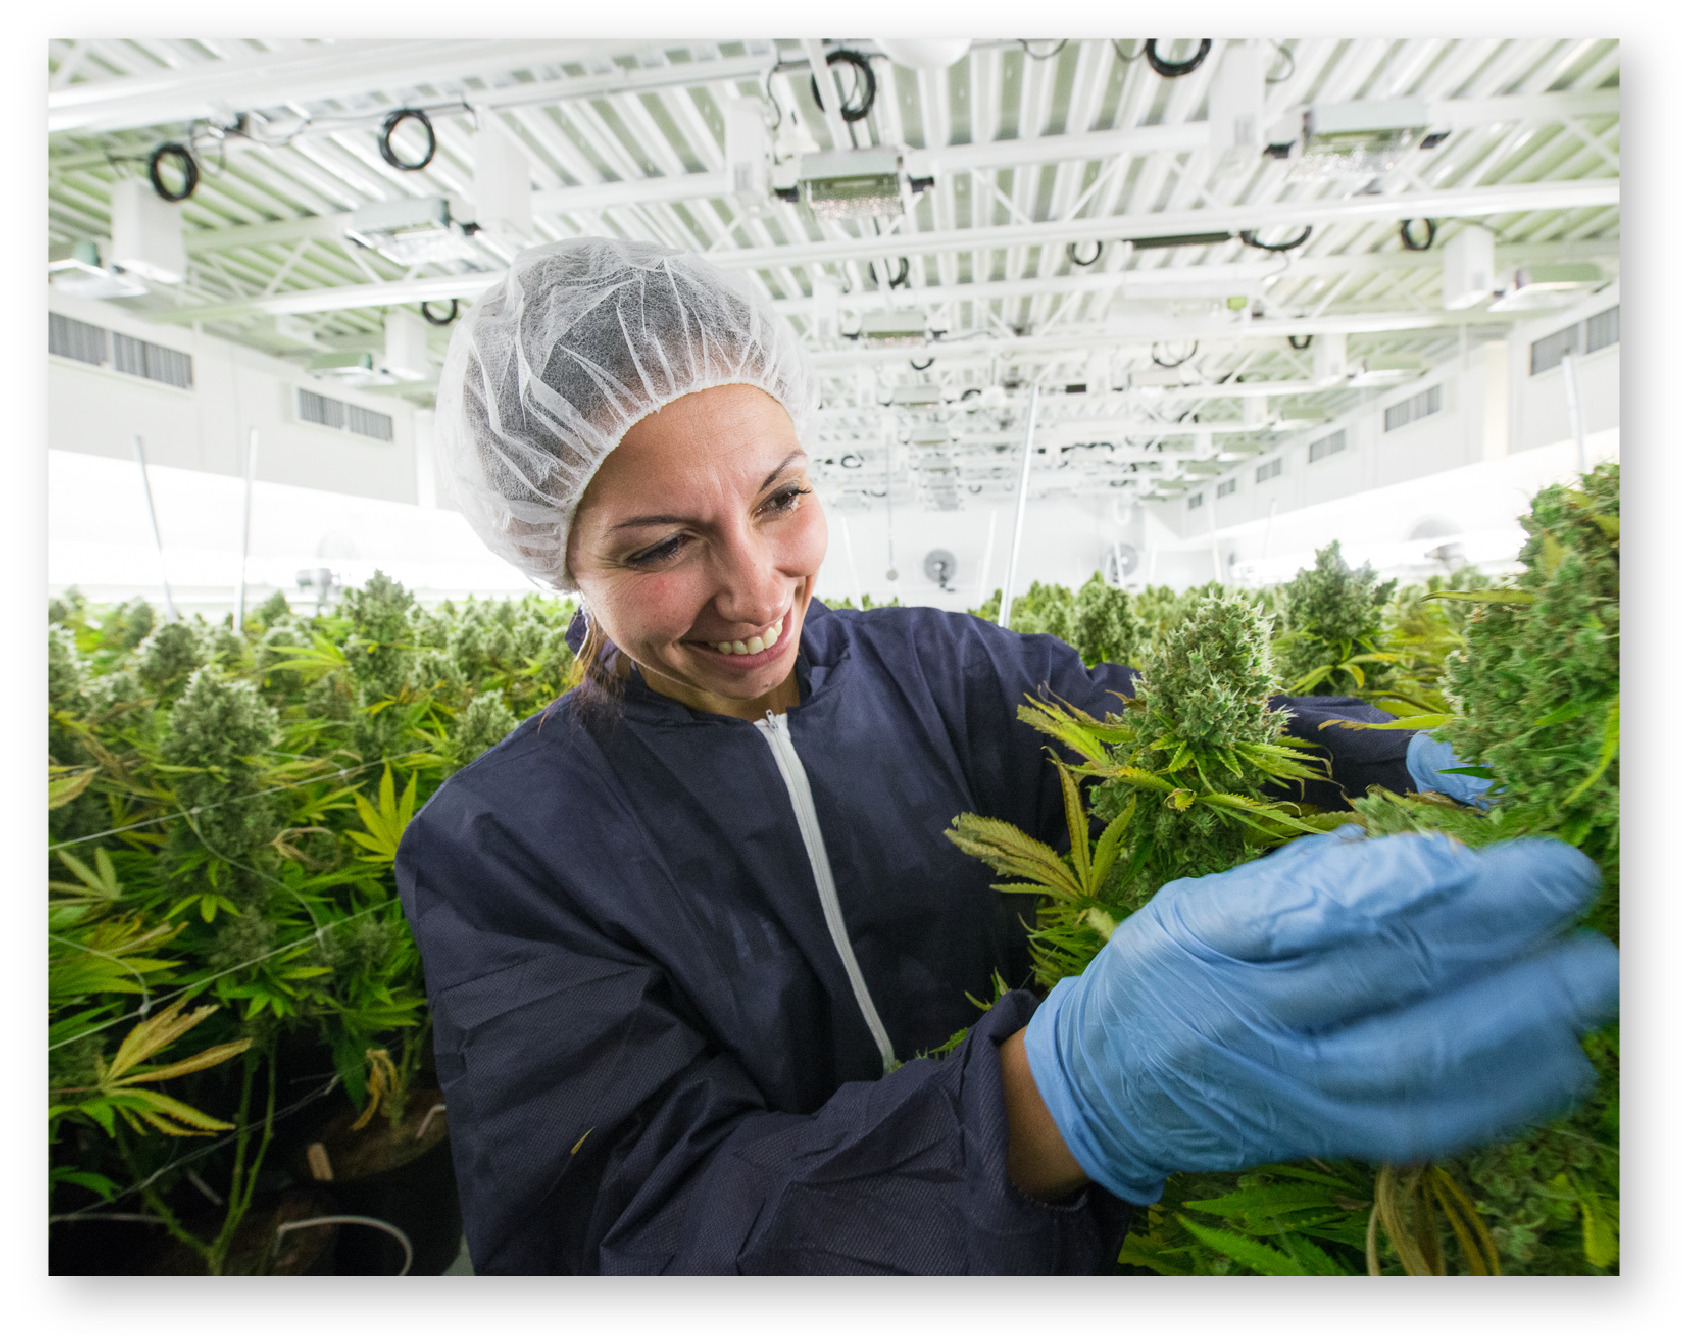 Our home - Our beautiful green homes are located in British Columbia and Ontario, where we grow our Irisa products with love, care, and cutting-edge technology. From cultivation to shipping, our team brings precision, professionalism and care to each stage of the process.